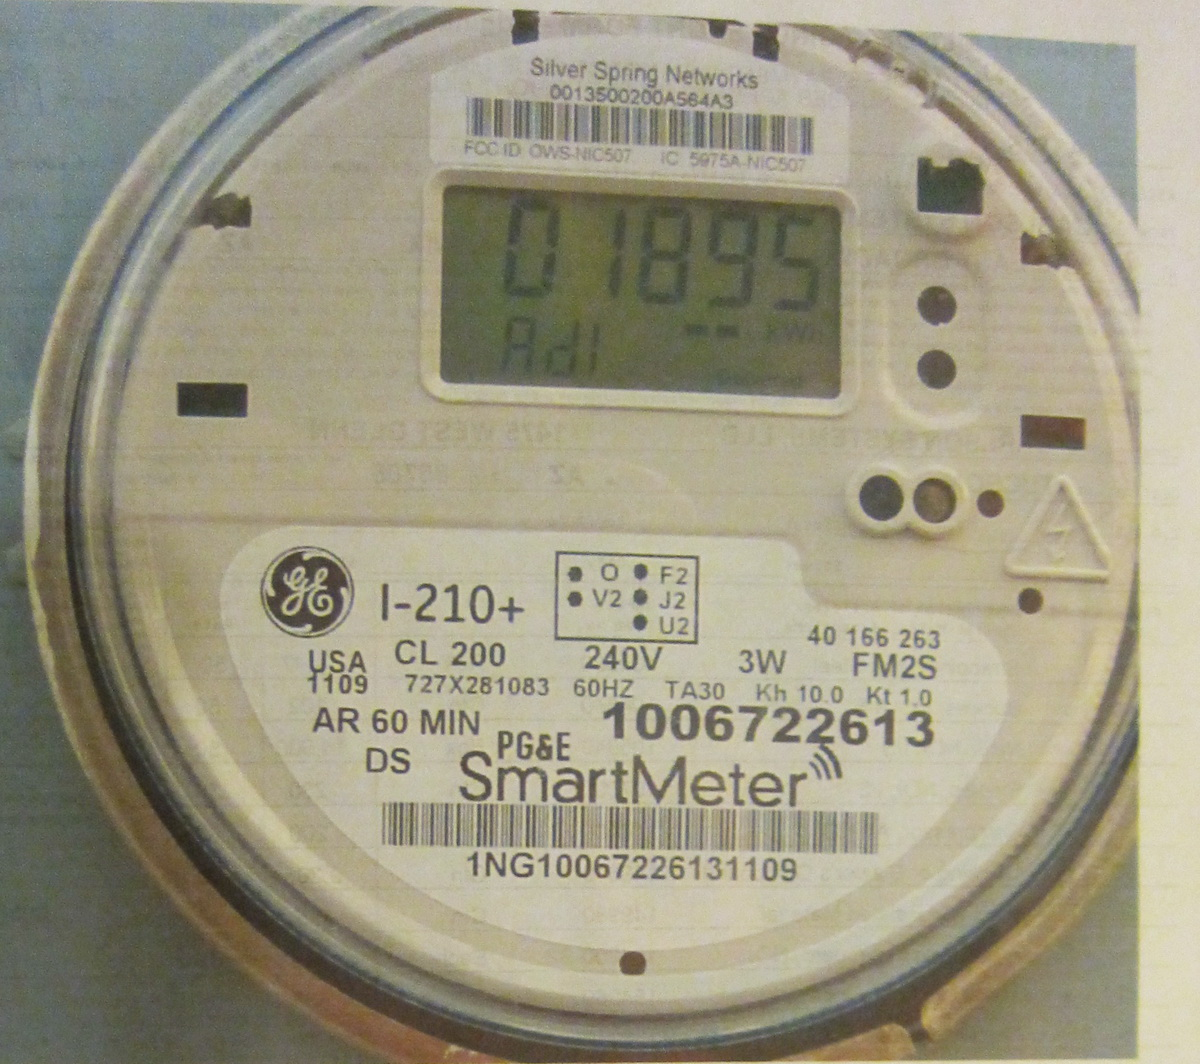 LAST 2014  COMMUNITY MEETING EXPLORES ELECTRIC SMART METERS IN KIHEI AND BEYOND SOON